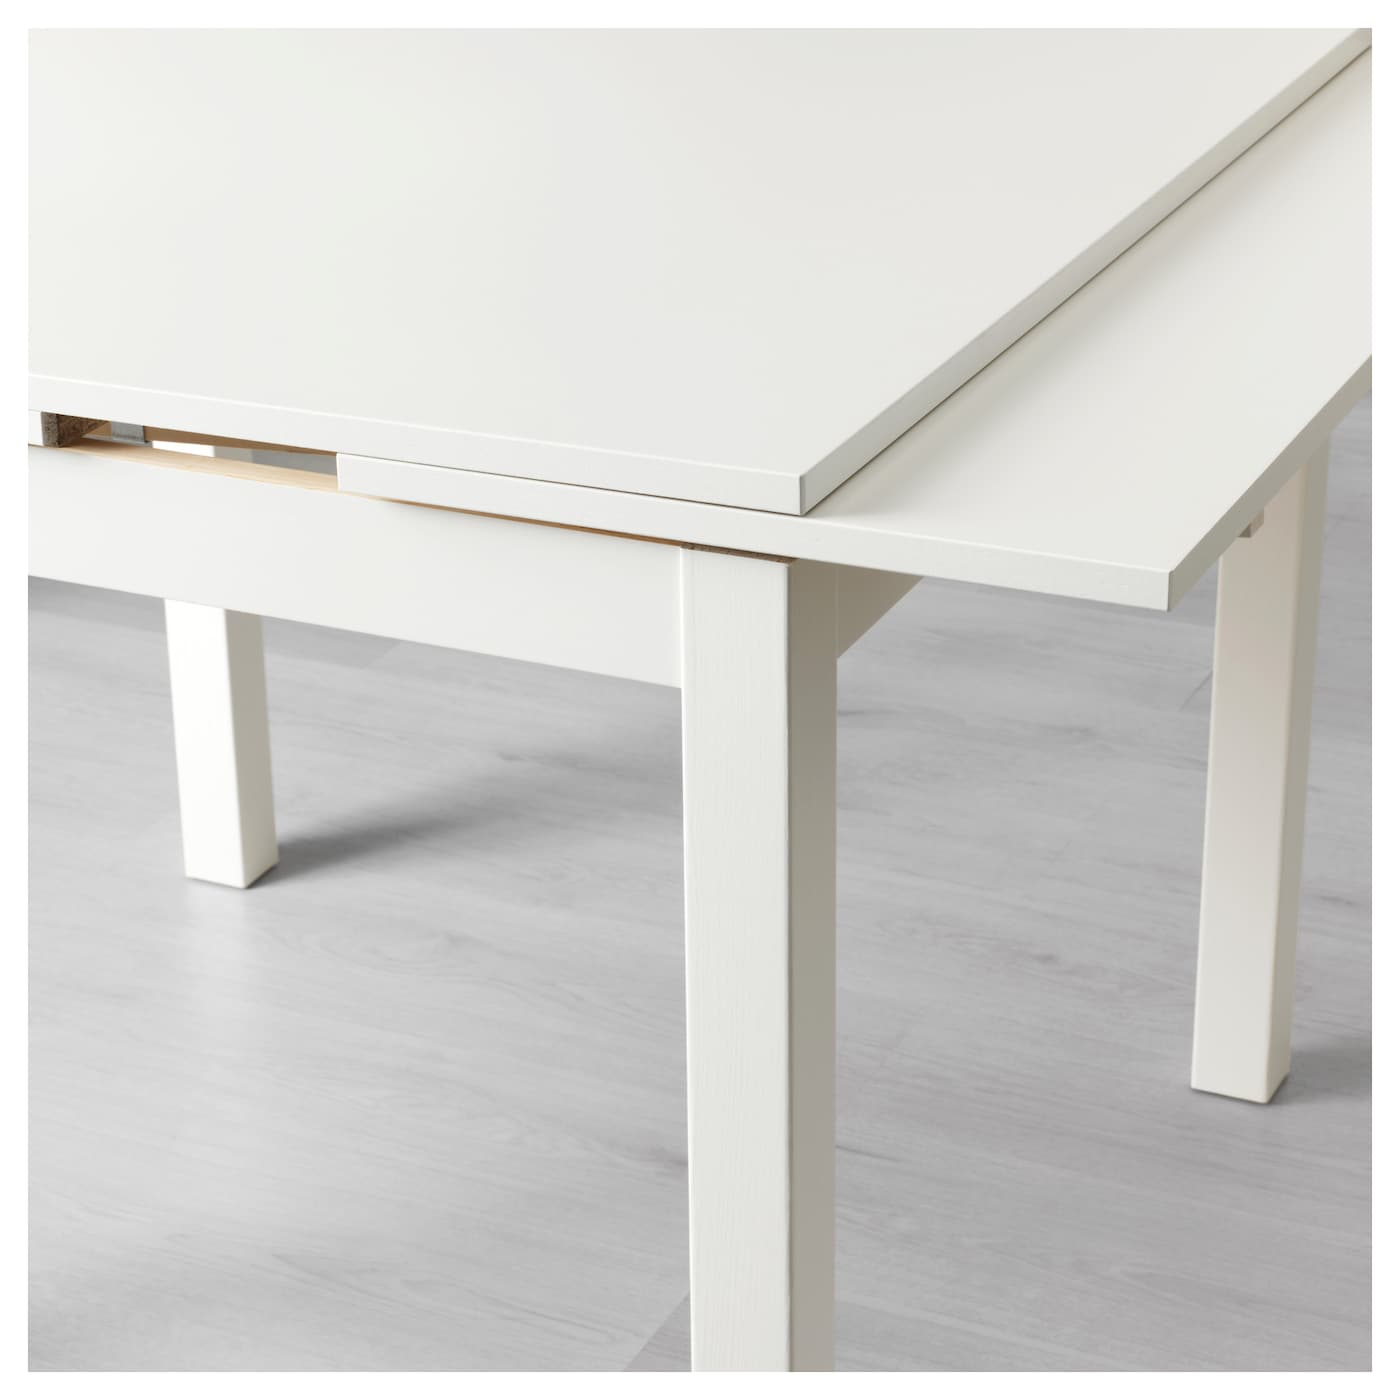 Bjursta extendable table white 90 129 168x90 cm ikea for Table extensible axiome